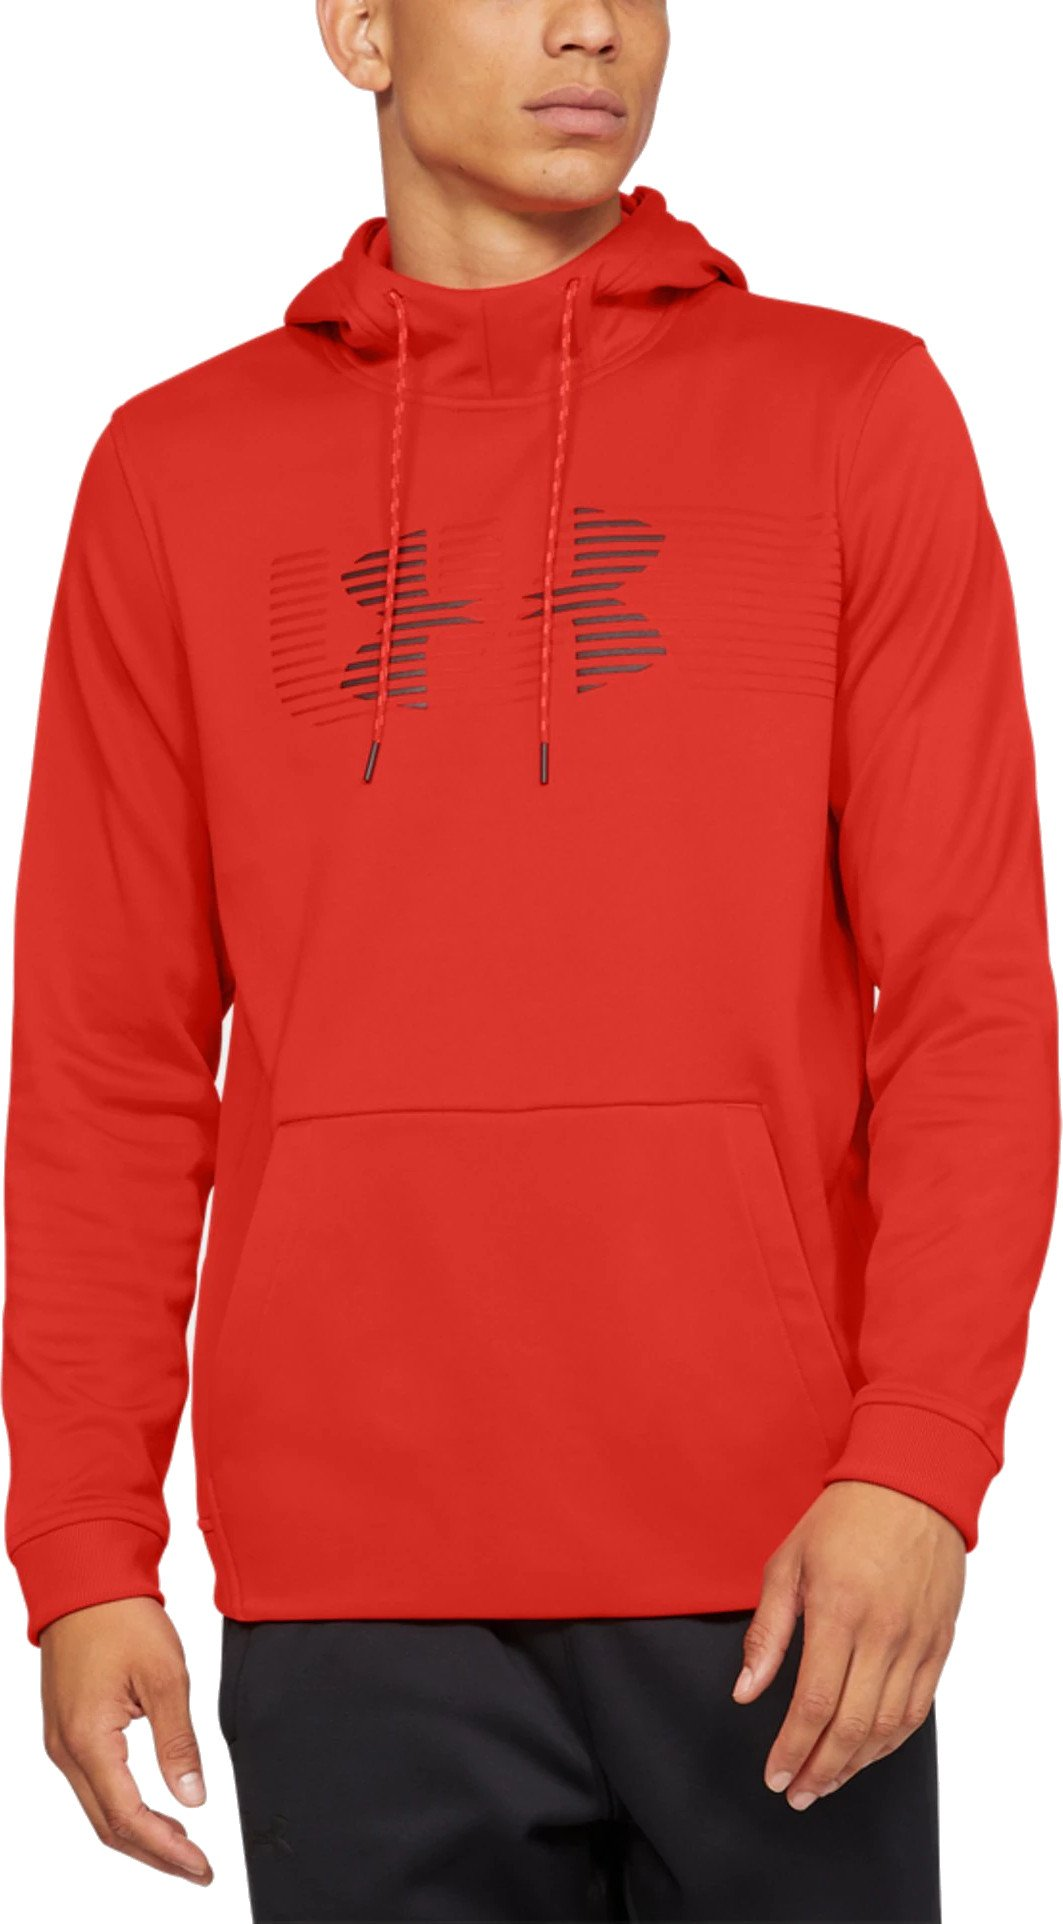 Trenirka s kapuljačom Under Armour ARMOUR FLEECE SPECTRUM PO HOODIE